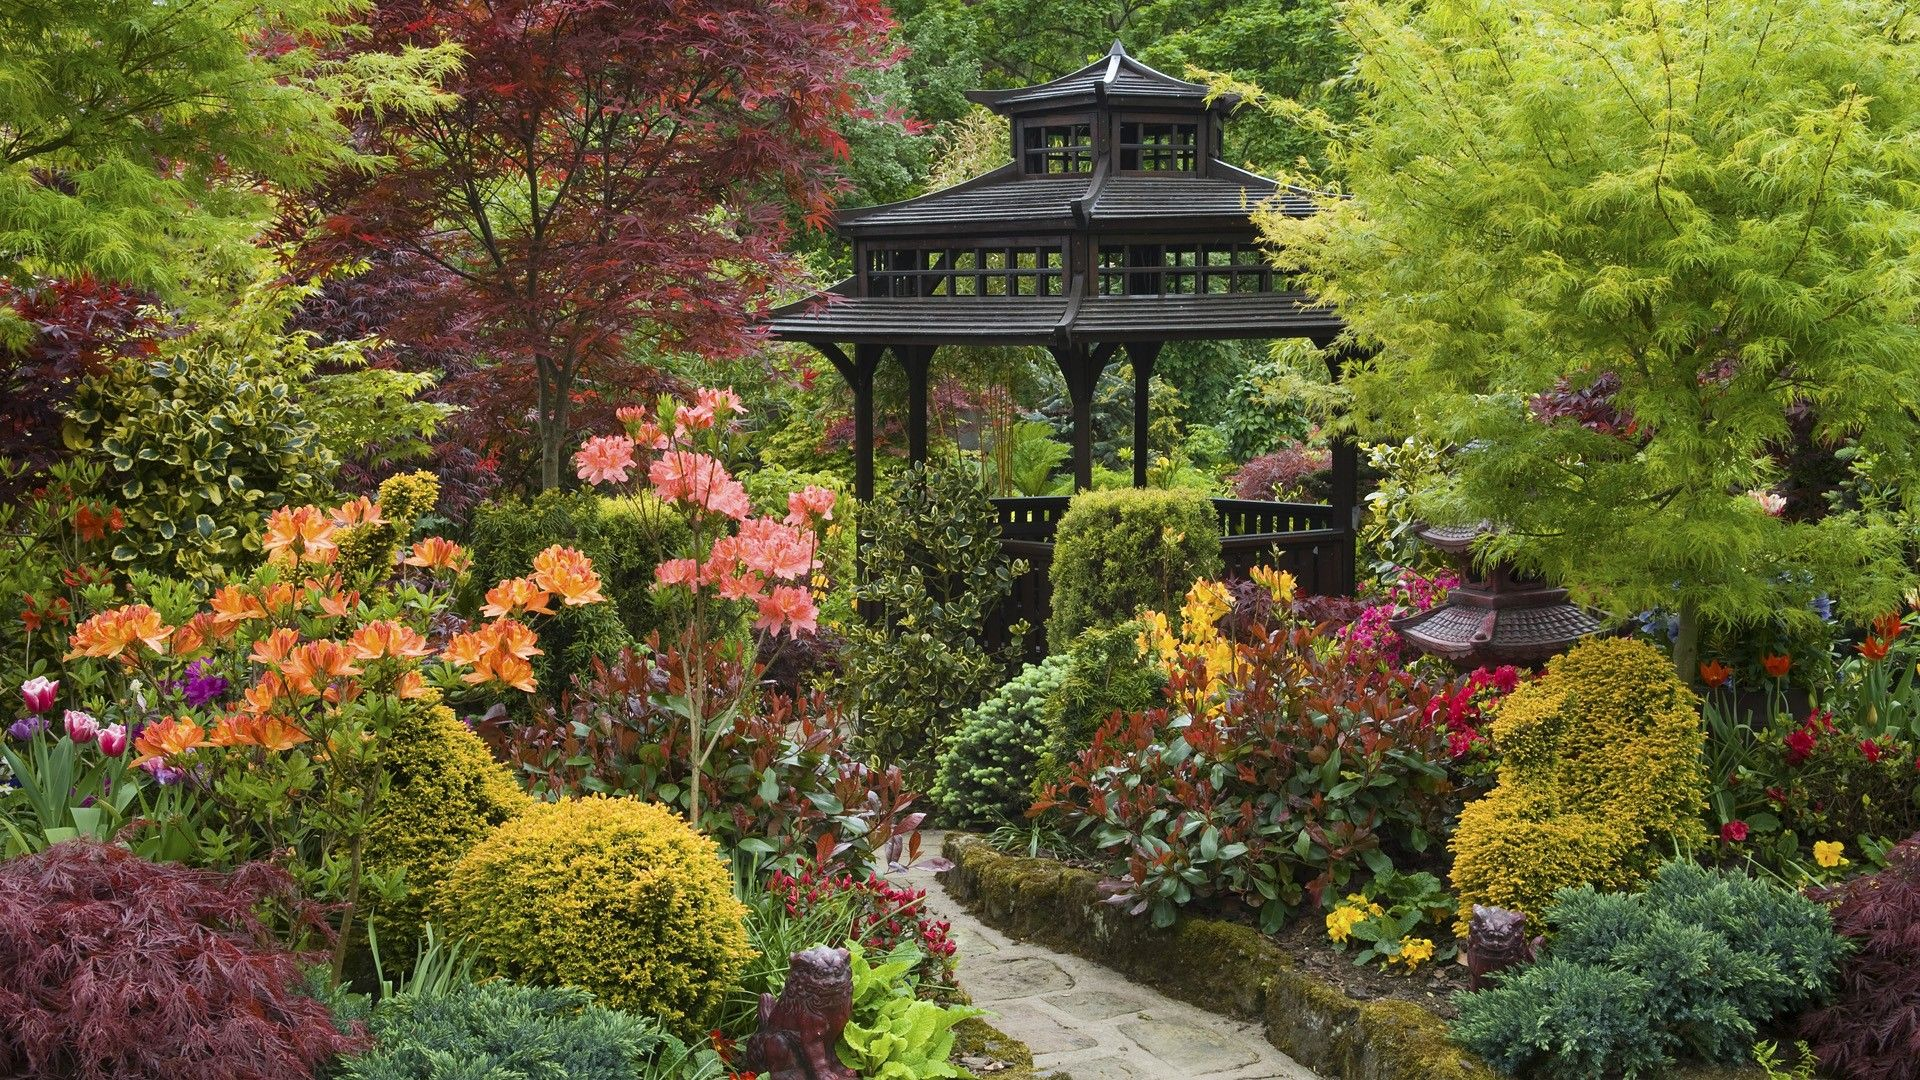 Lovely Zen Garden Wallpaper Favorite Places Spaces - Japanese gardens in england